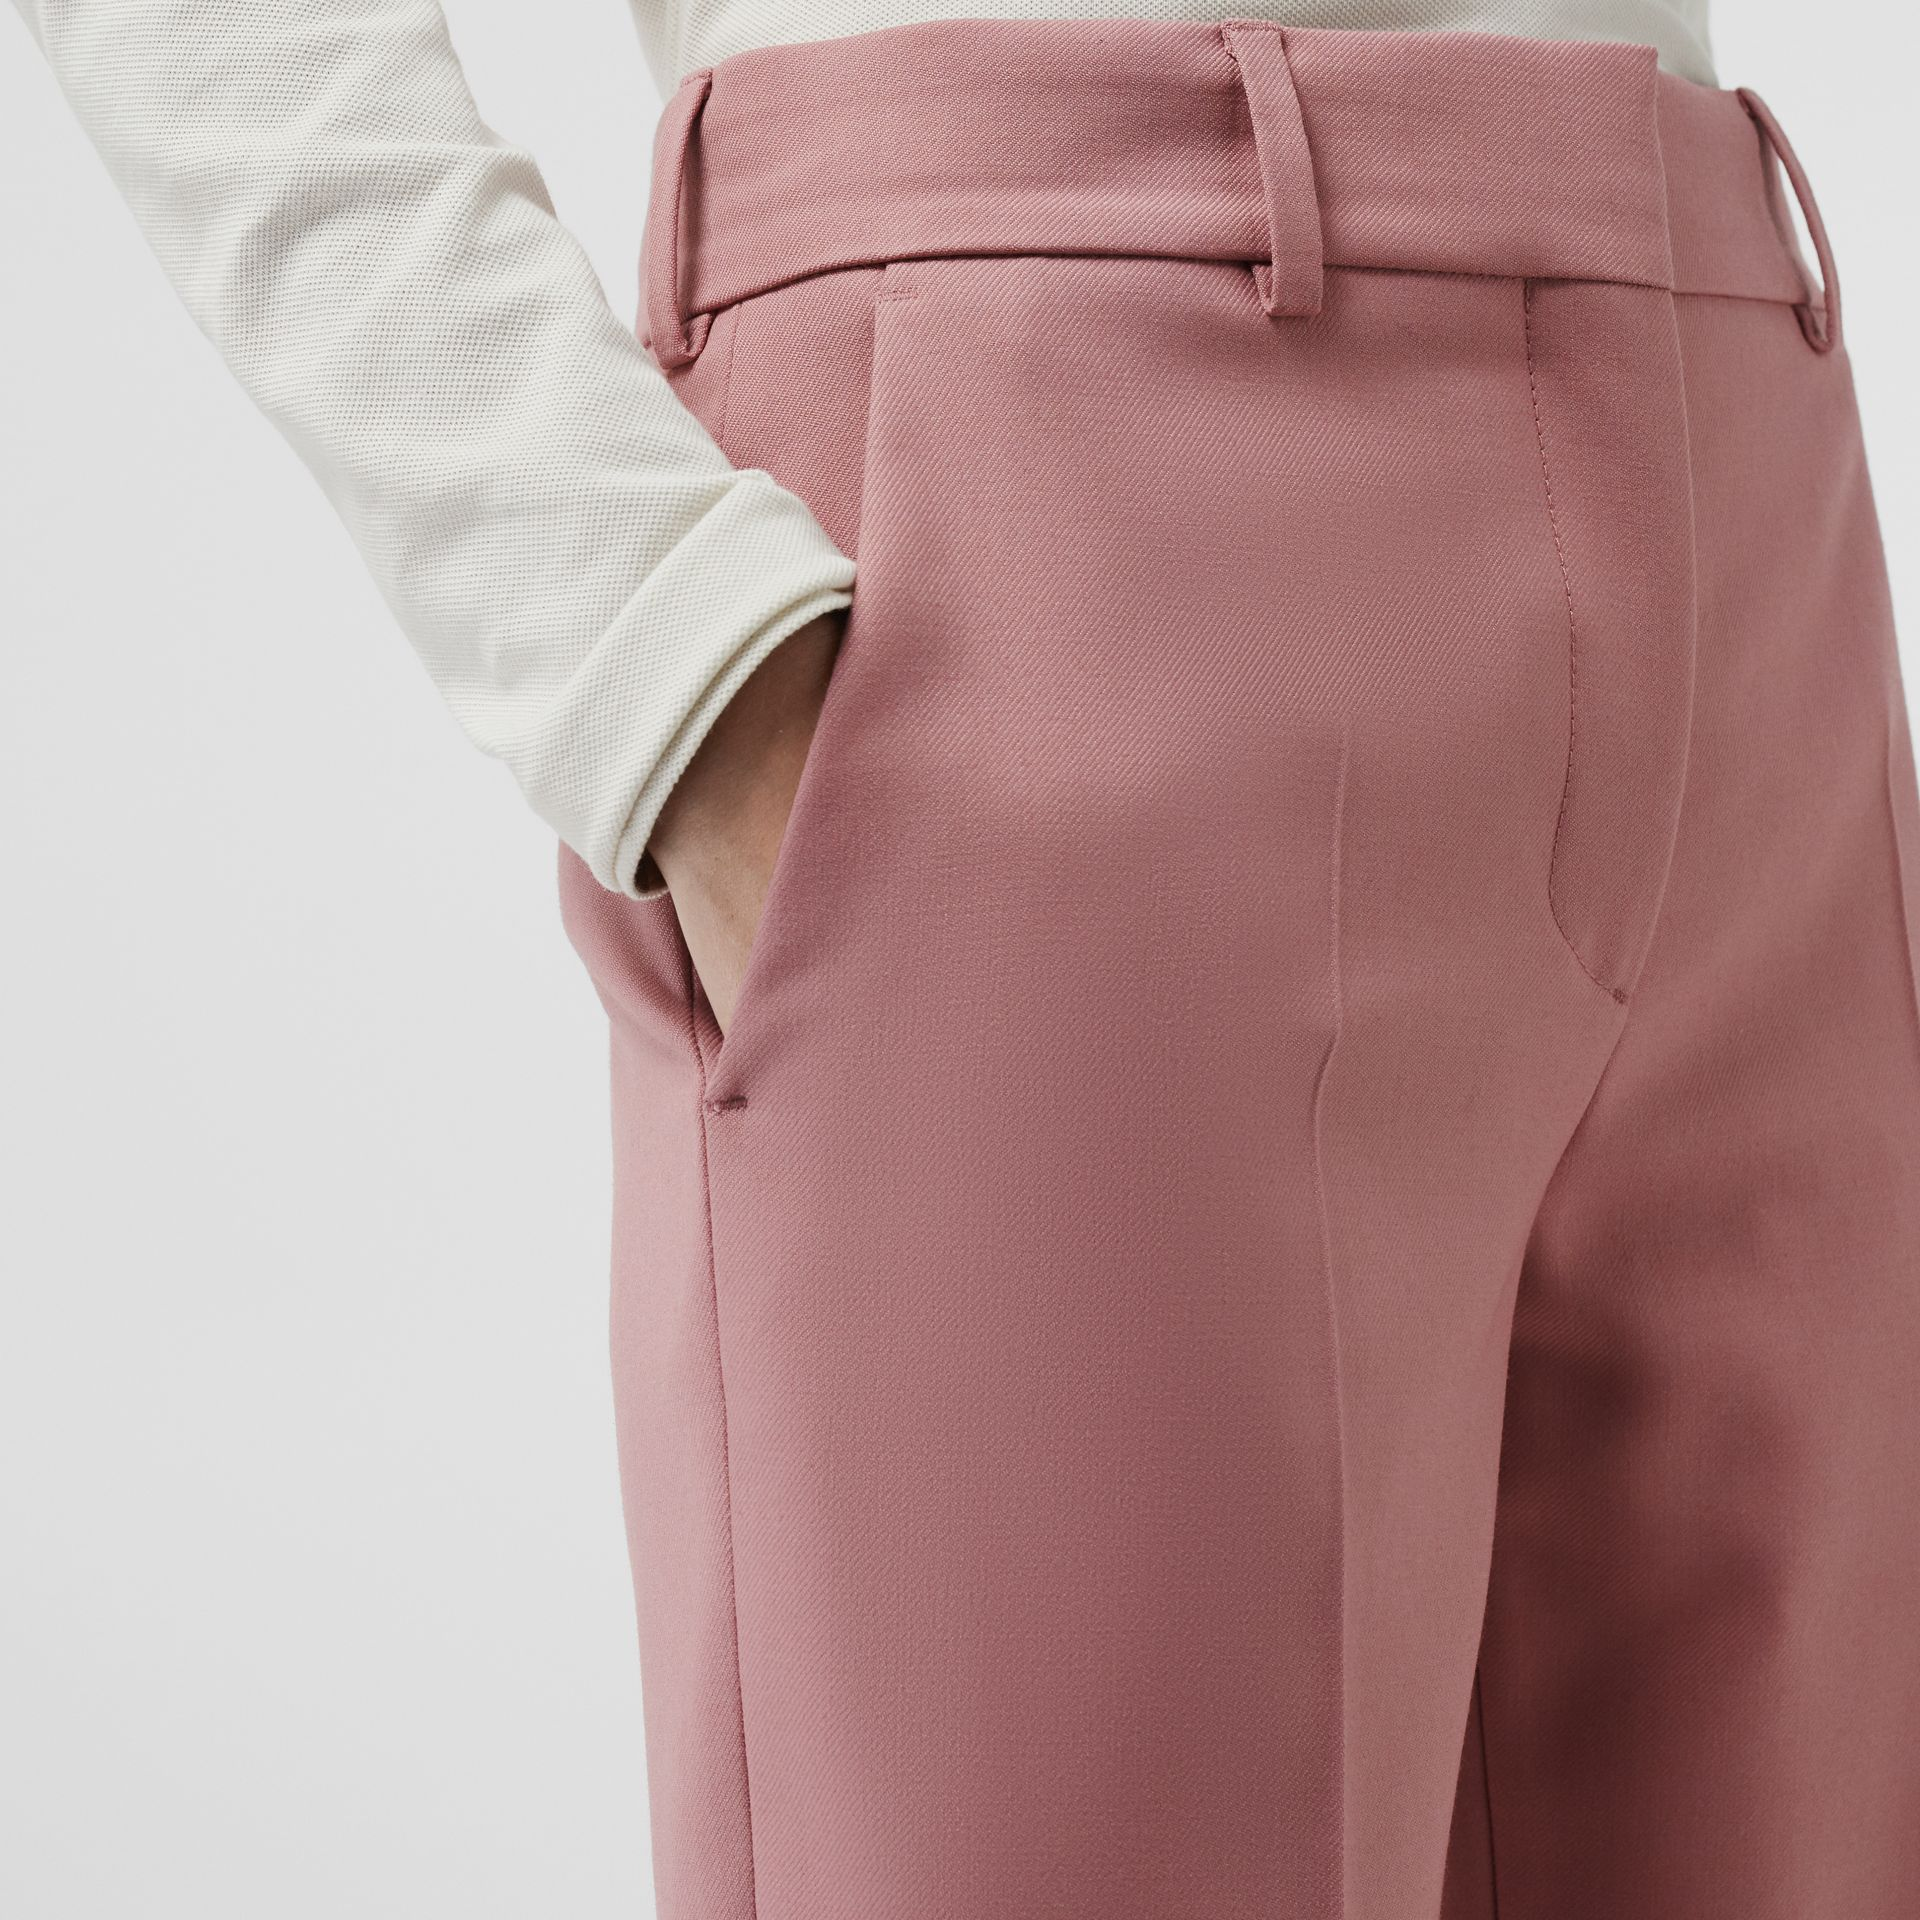 Straight Fit Wool Blend Tailored Trousers in Chalk Pink - Women | Burberry - gallery image 1